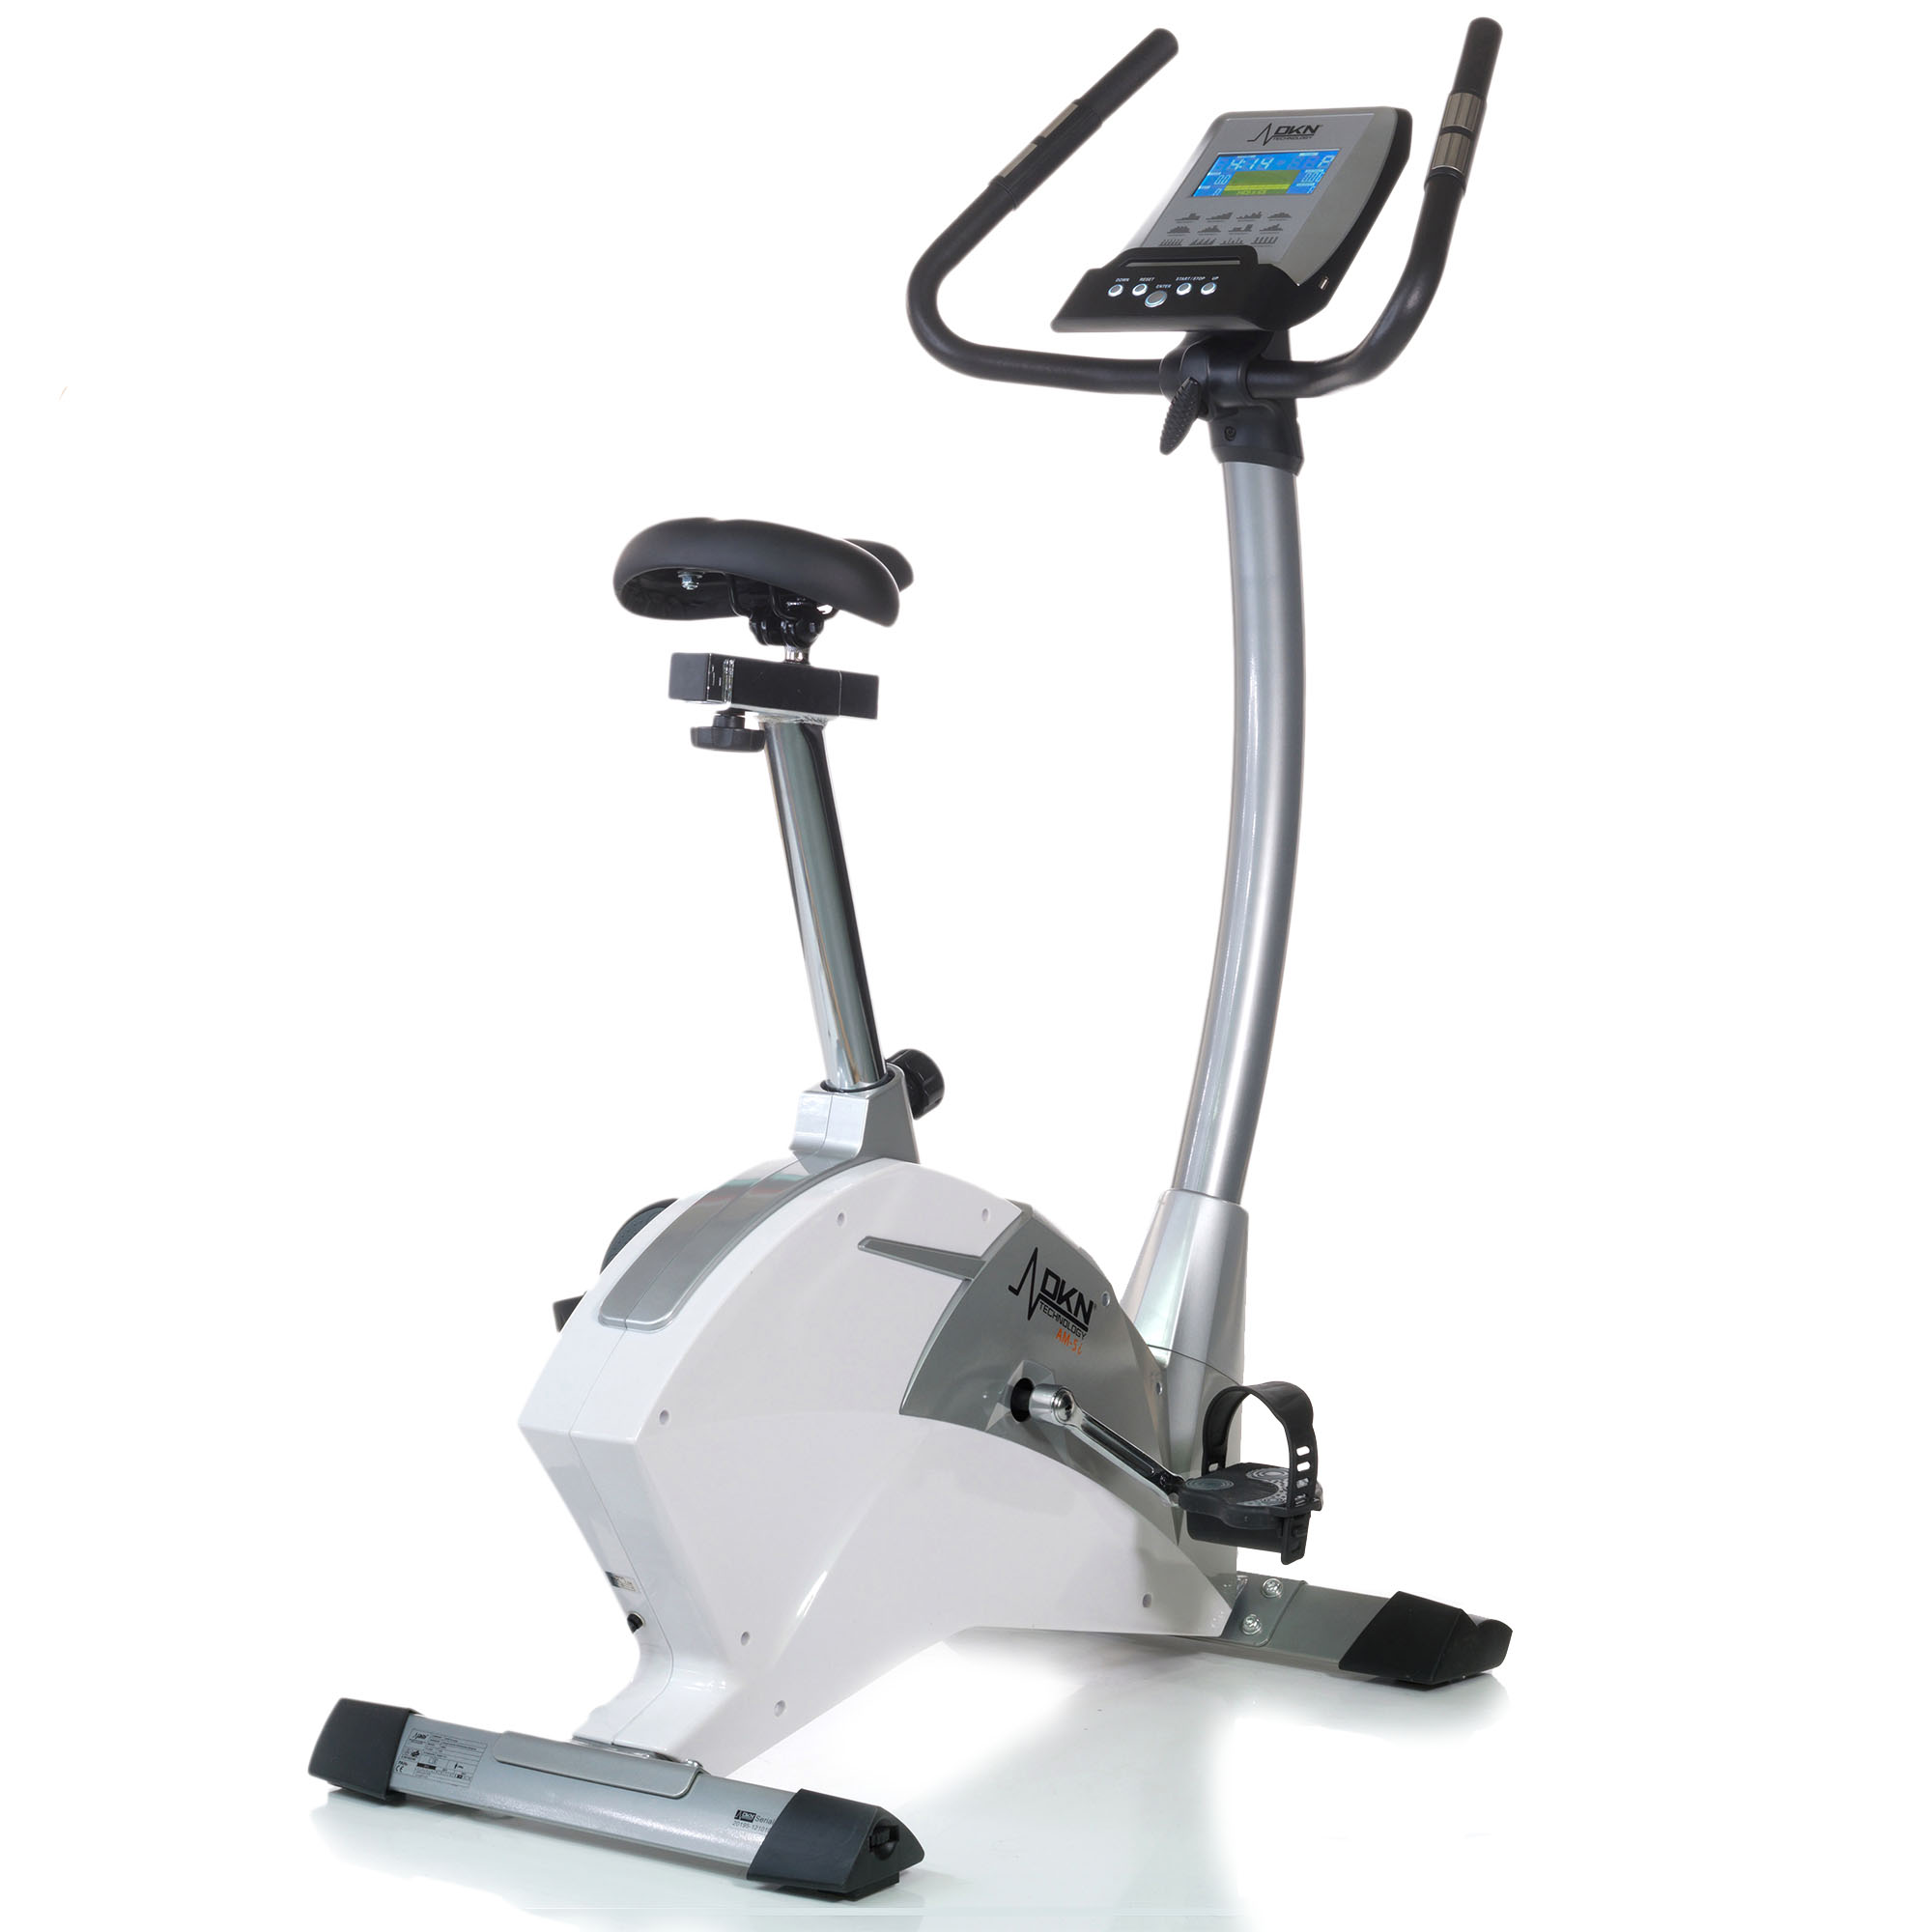 DKN AM5i Ergo Exercise Bike